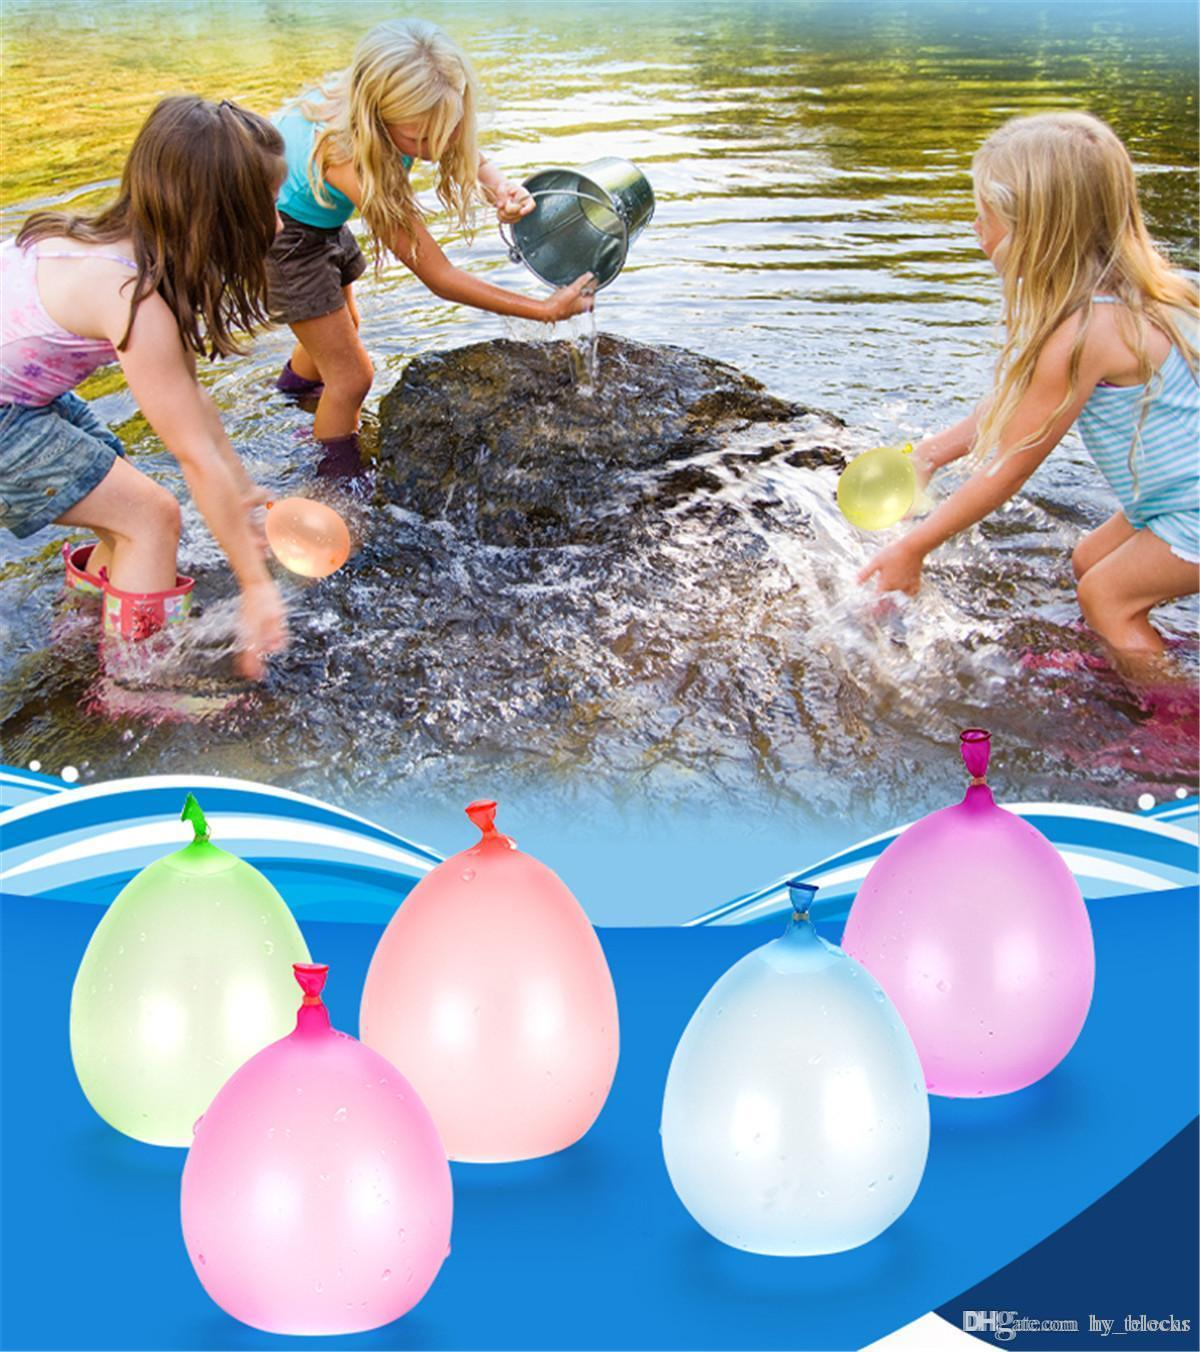 2020 Colorful Magic Water-filled Bunch Balloons Children Summer Game Novetly Water Bomb Outdoor Kids Toys DHL Free Shipping 01